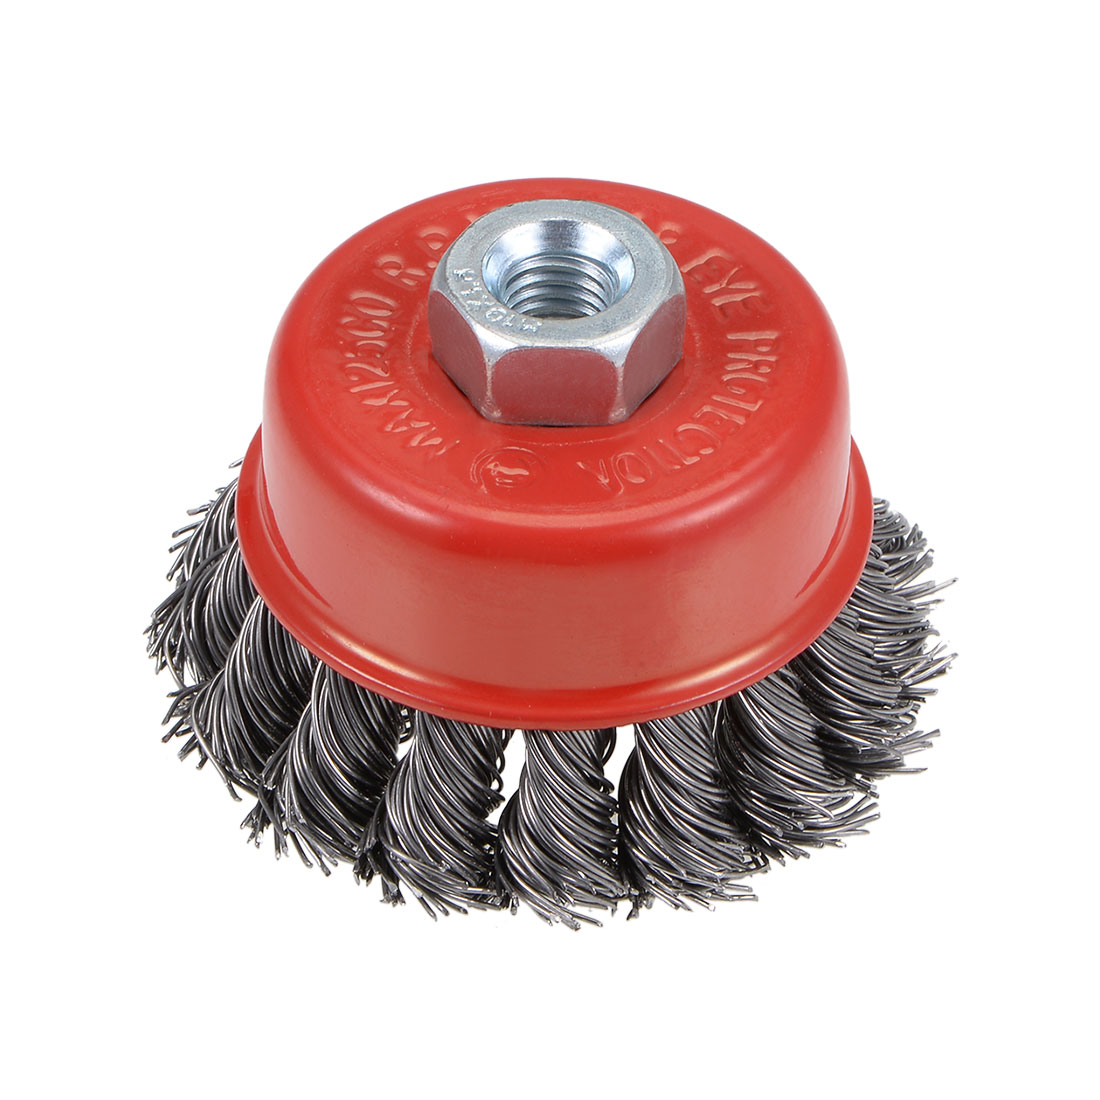 2-1/2-Inch Wire Cup Brush Twist Knotted Crimped Steel with M10 Threaded Hole